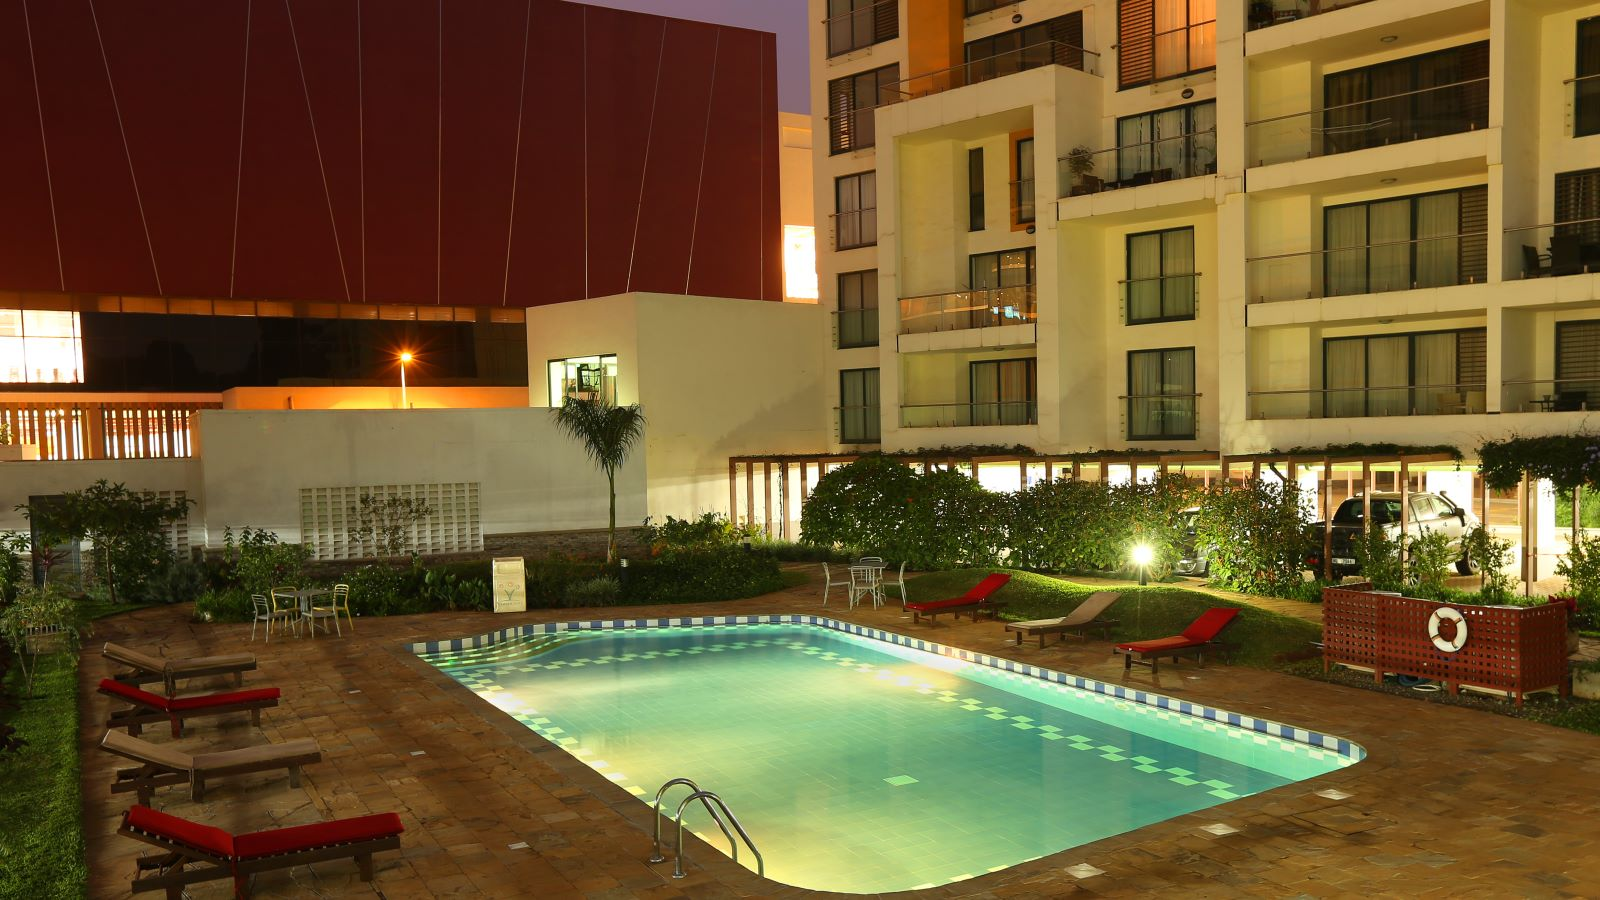 Night View of Garden City Outdoor Pool - Mace Group